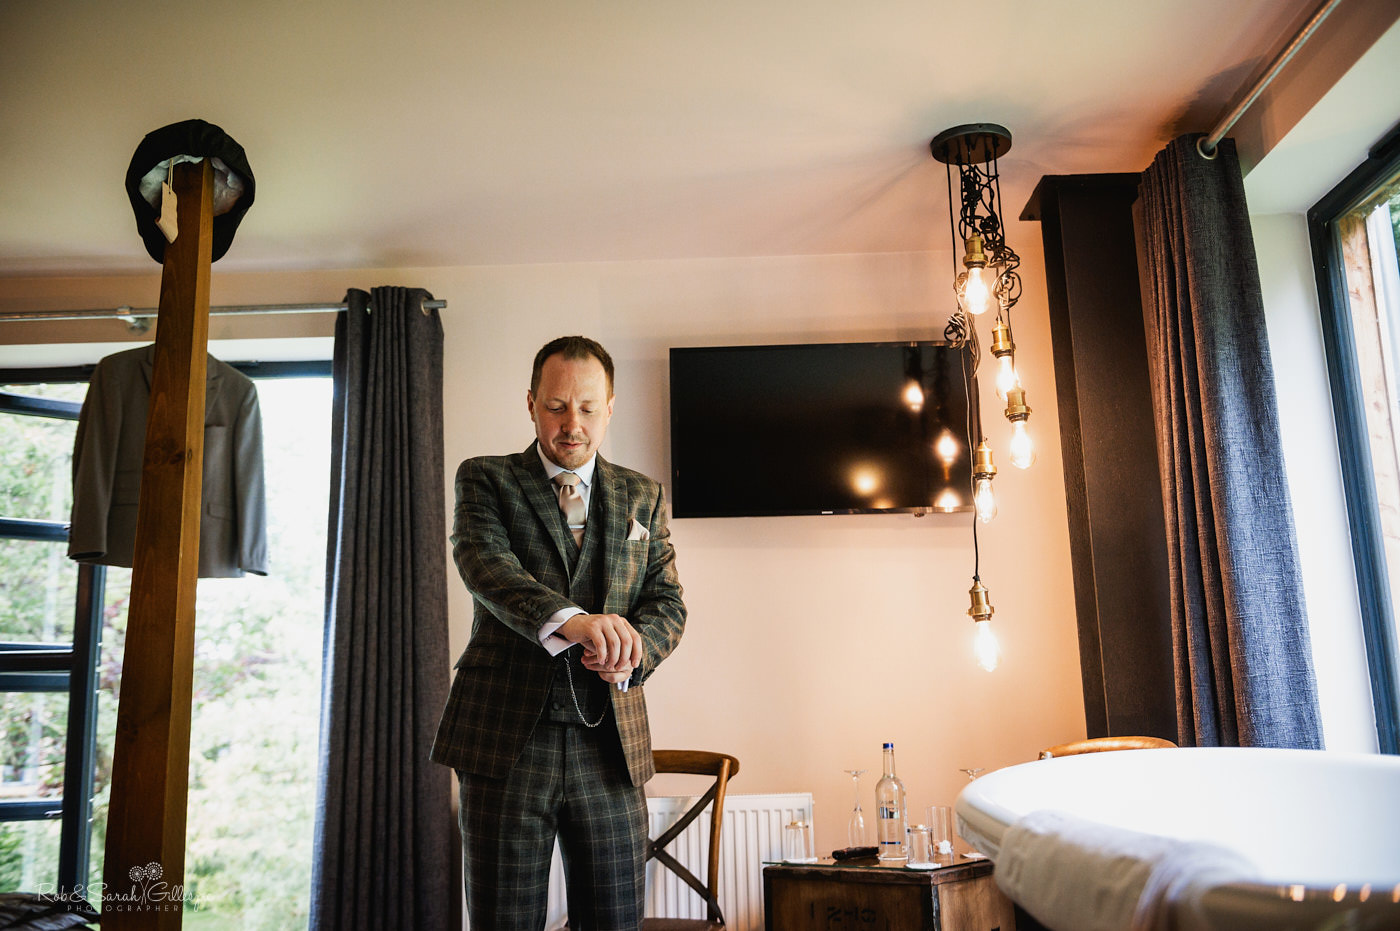 Groom gets ready for wedding in bridal suite at The Mill Barns